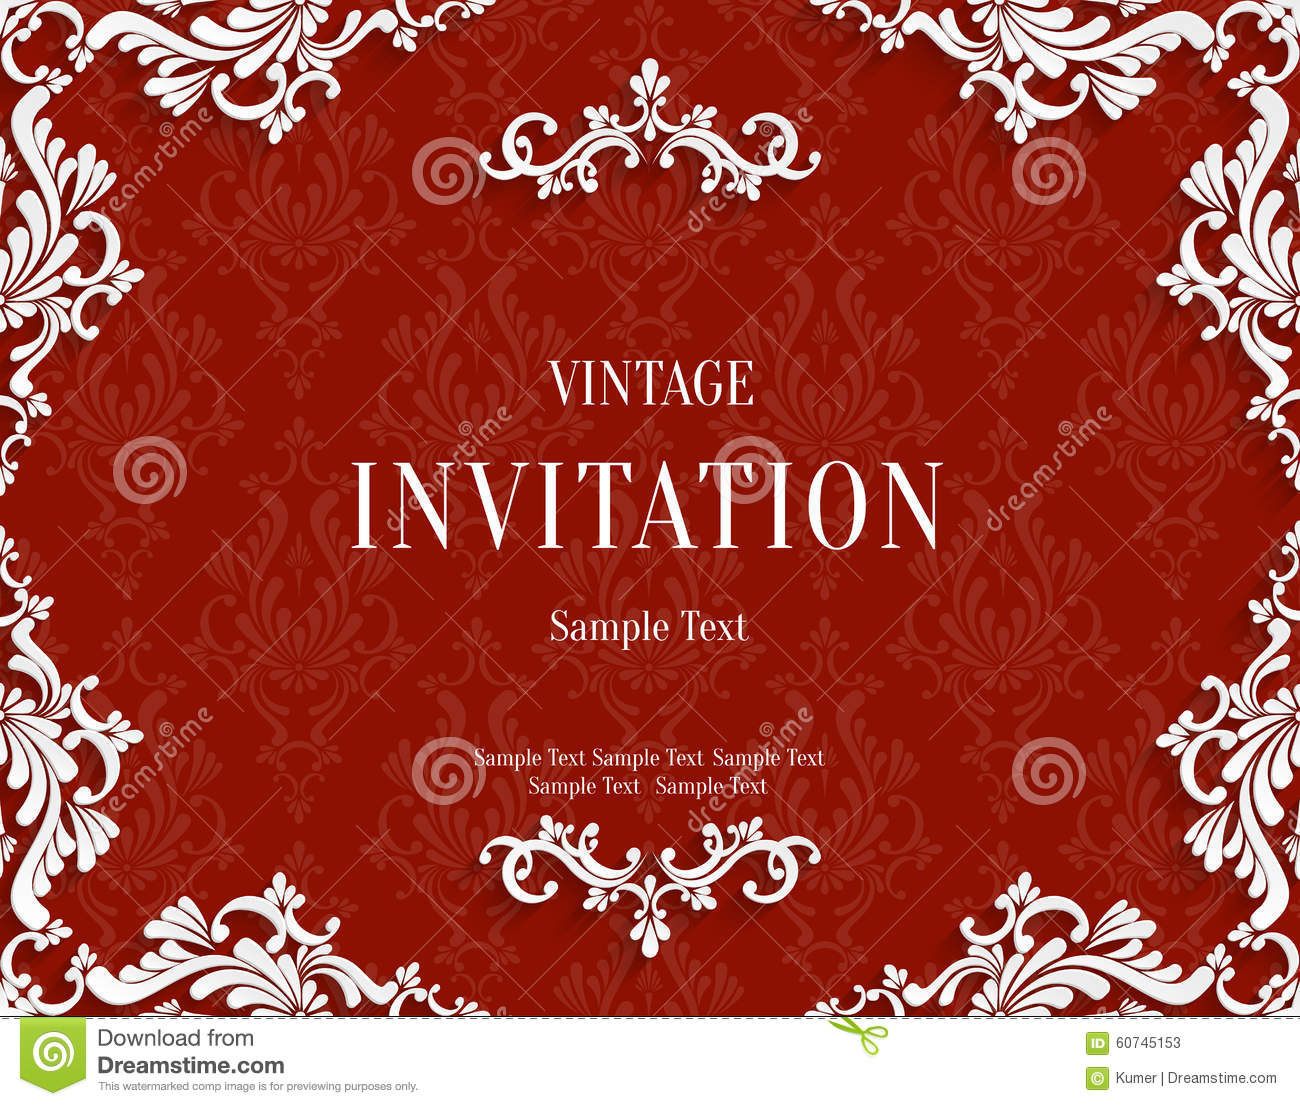 Vector Red 3d Vintage Invitation Card with Floral Damask Pattern